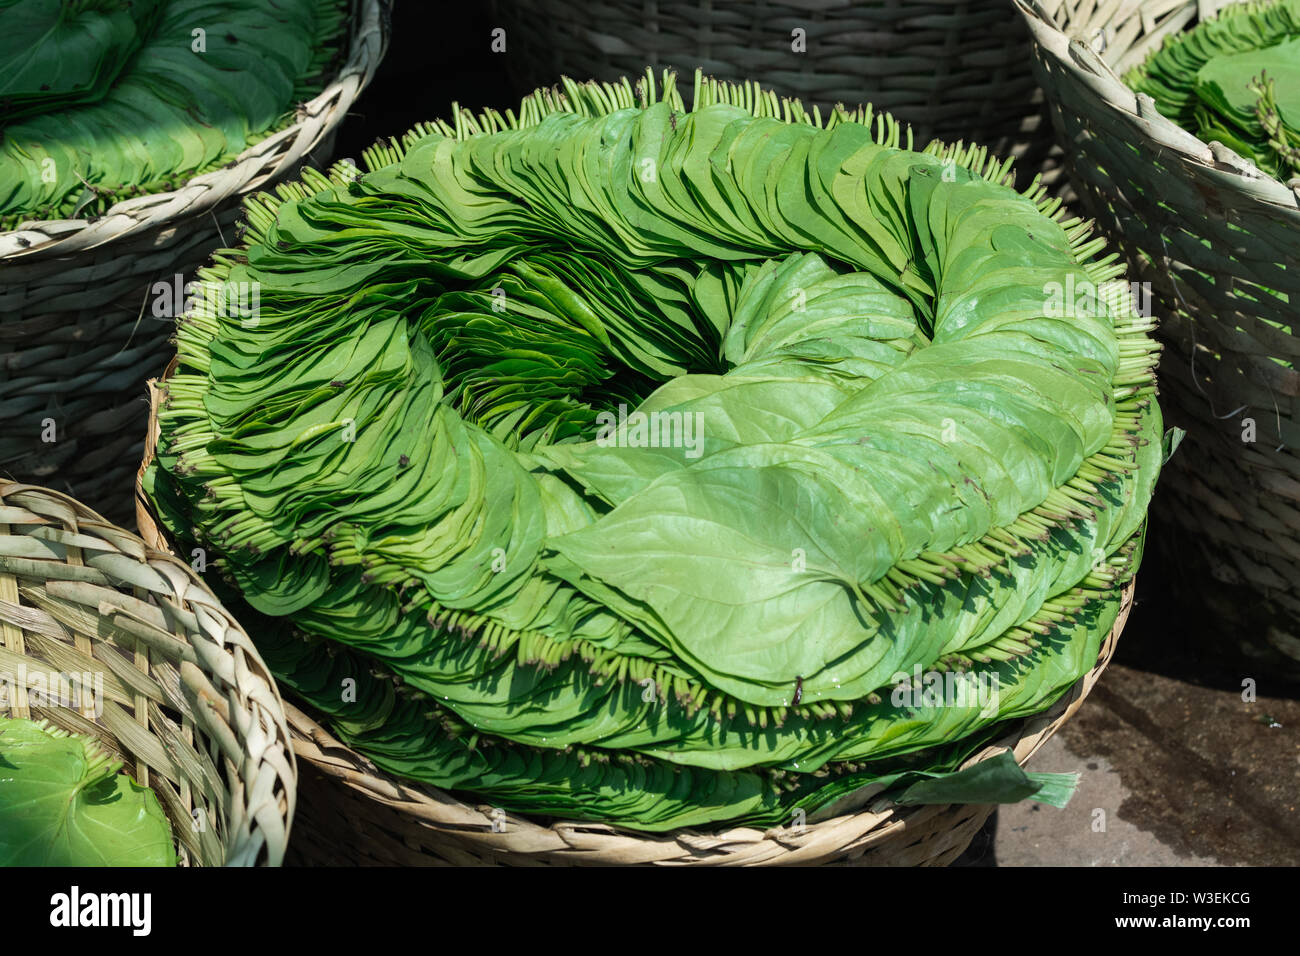 Betel green leaves packed in a basket for sale at Yangon street market, Myanmar - Stock Image